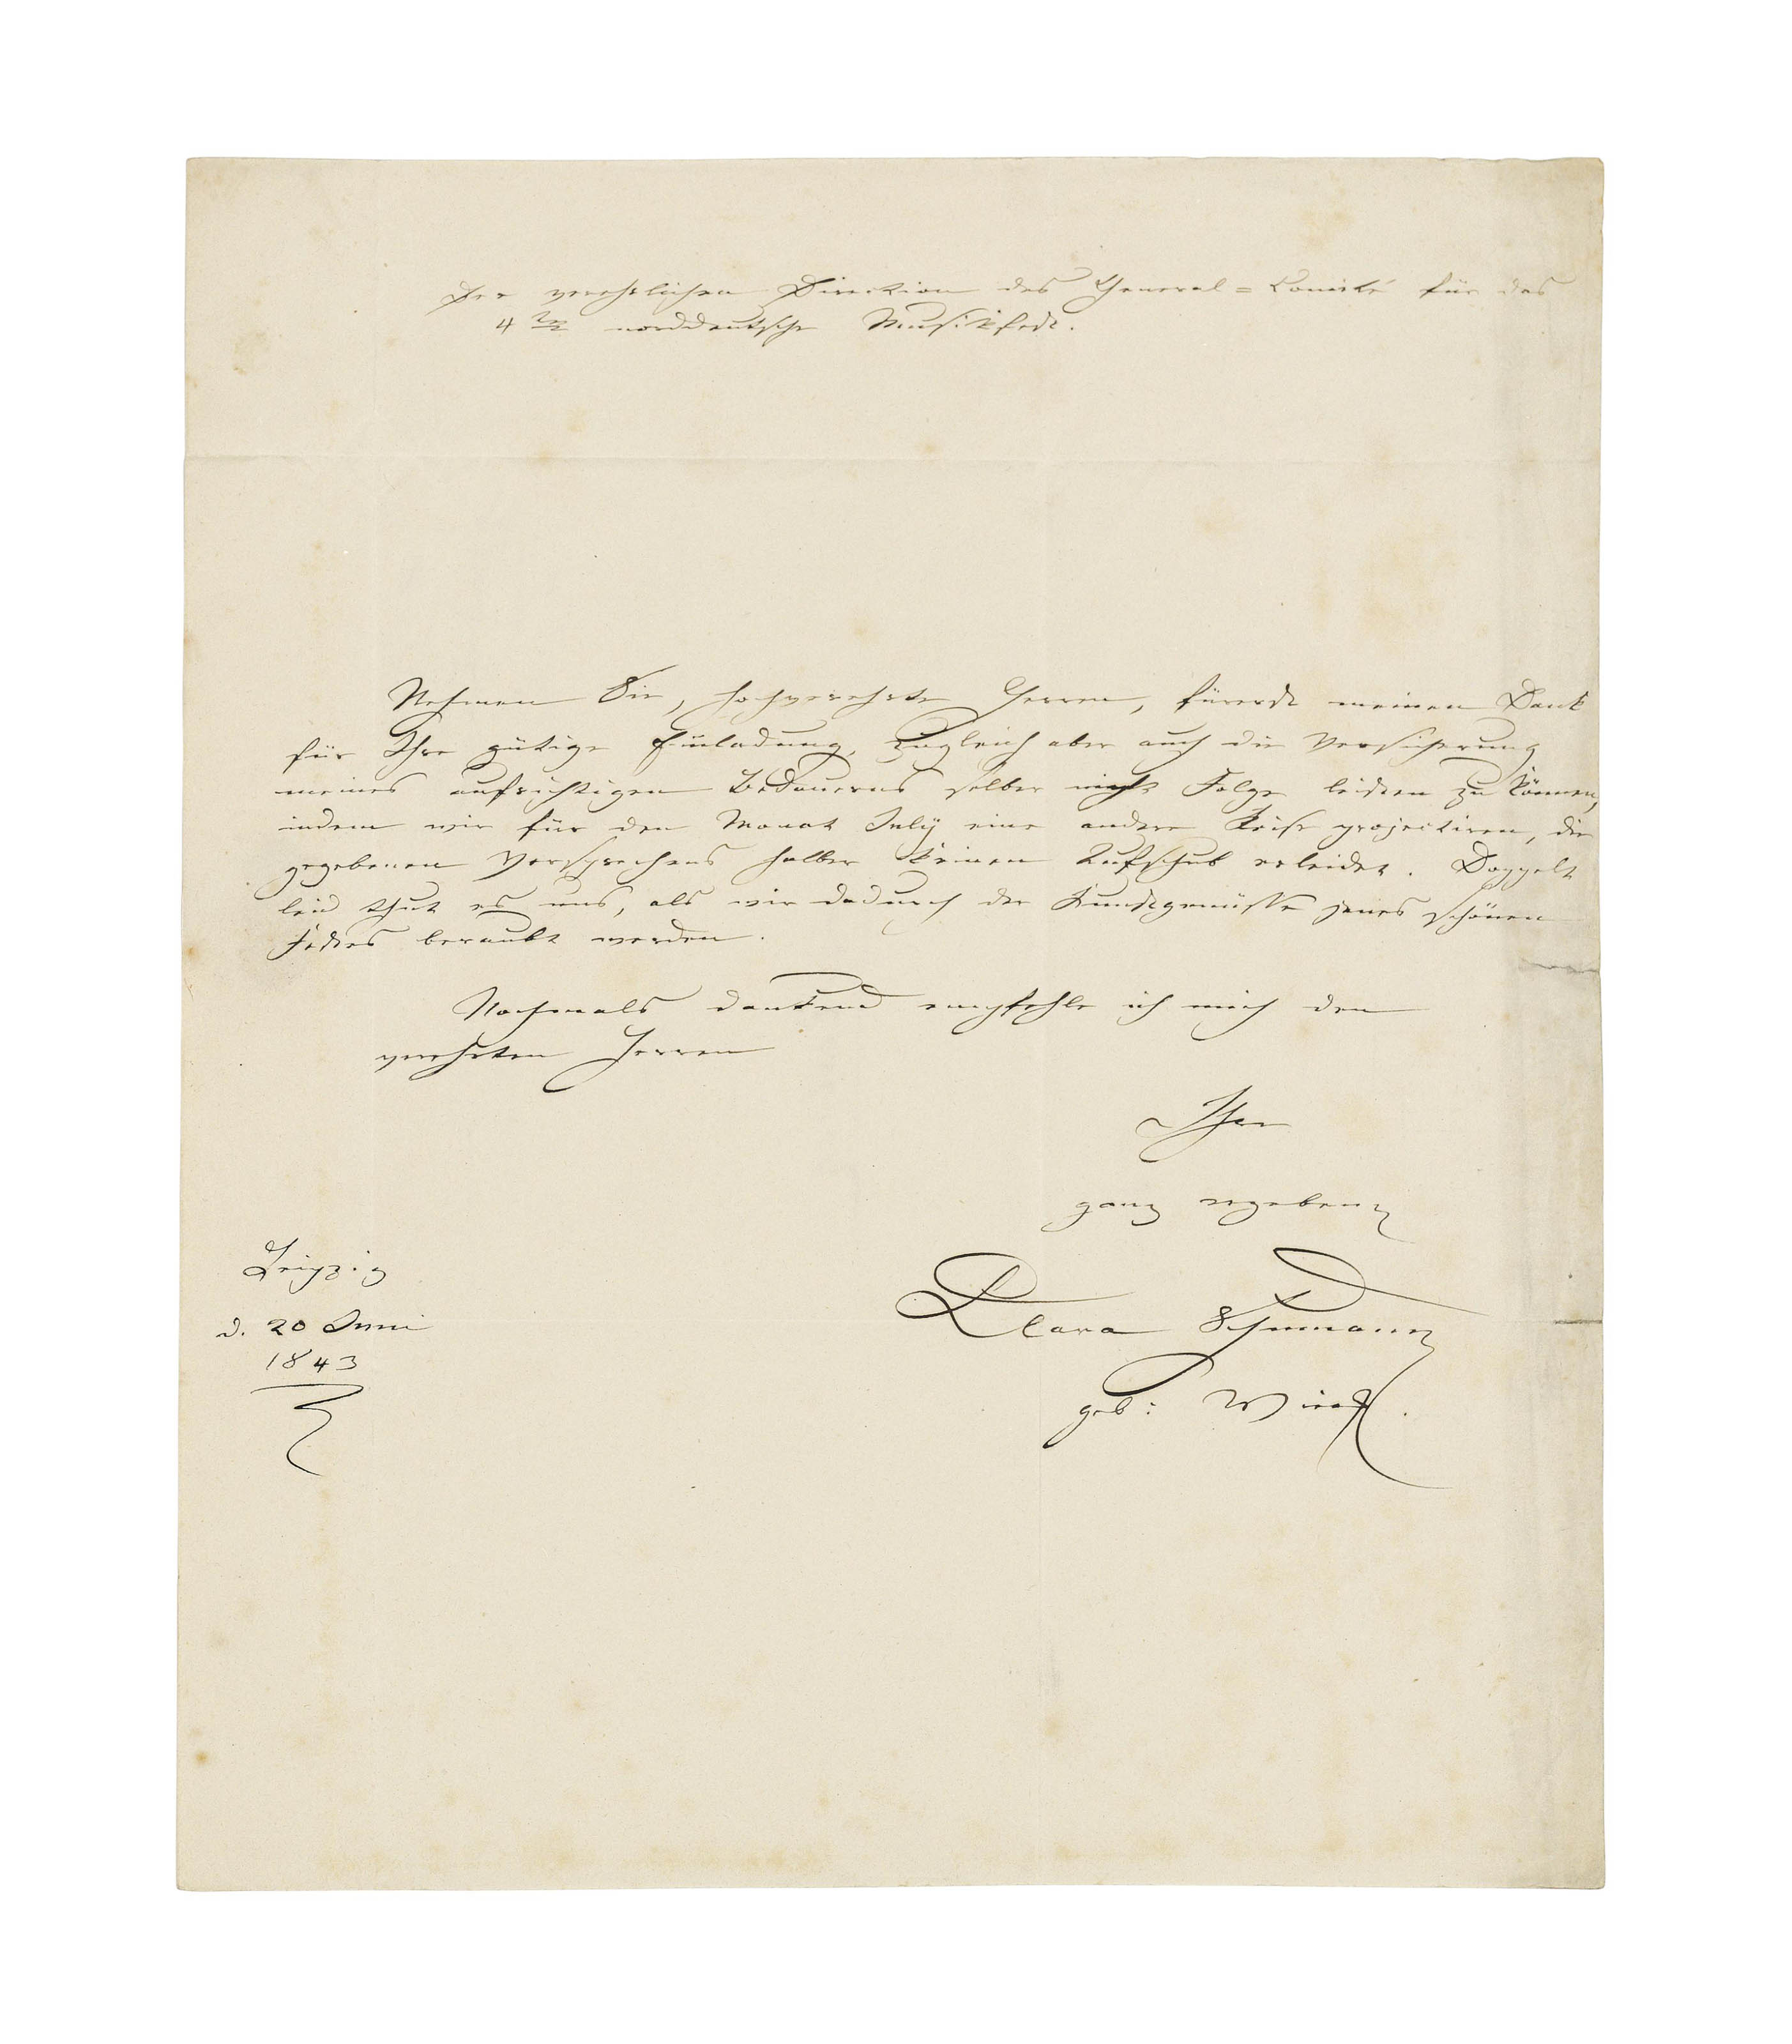 SCHUMANN, Clara (1819-1896). Two autograph letters signed, the first SIGNED WITH BOTH HER MARRIED AND MAIDEN NAMES ('Clara Schumann geb. Wieck') to Professor Kierulff and the directors of the general committee of the 4th North-German music festival, Leipzig, 20 June 1843, declining an invitation to the festival, as the Schumanns plan another journey for the month of July which cannot be put off; 'We are doubly sorry, as we shall thus be deprived of the pleasures of that delightful festival' ('Doppelt leid thut es uns, als wir dadurch der Kunstgenüsse jenes schönen Festes beraubt werden'), one page, 4to, integral address leaf, seal tear; the second signed ('Clara Schumann') to an unidentified recipient, 4 June n.y., writing on behalf of her husband to decline an invitation, as he is unwell, one page, 8vo, bifolium. Provenance: collection of Dr Fritz and Dita Callomon, the first acquired at Leipmannsohn, Berlin; thence by gift. (2)